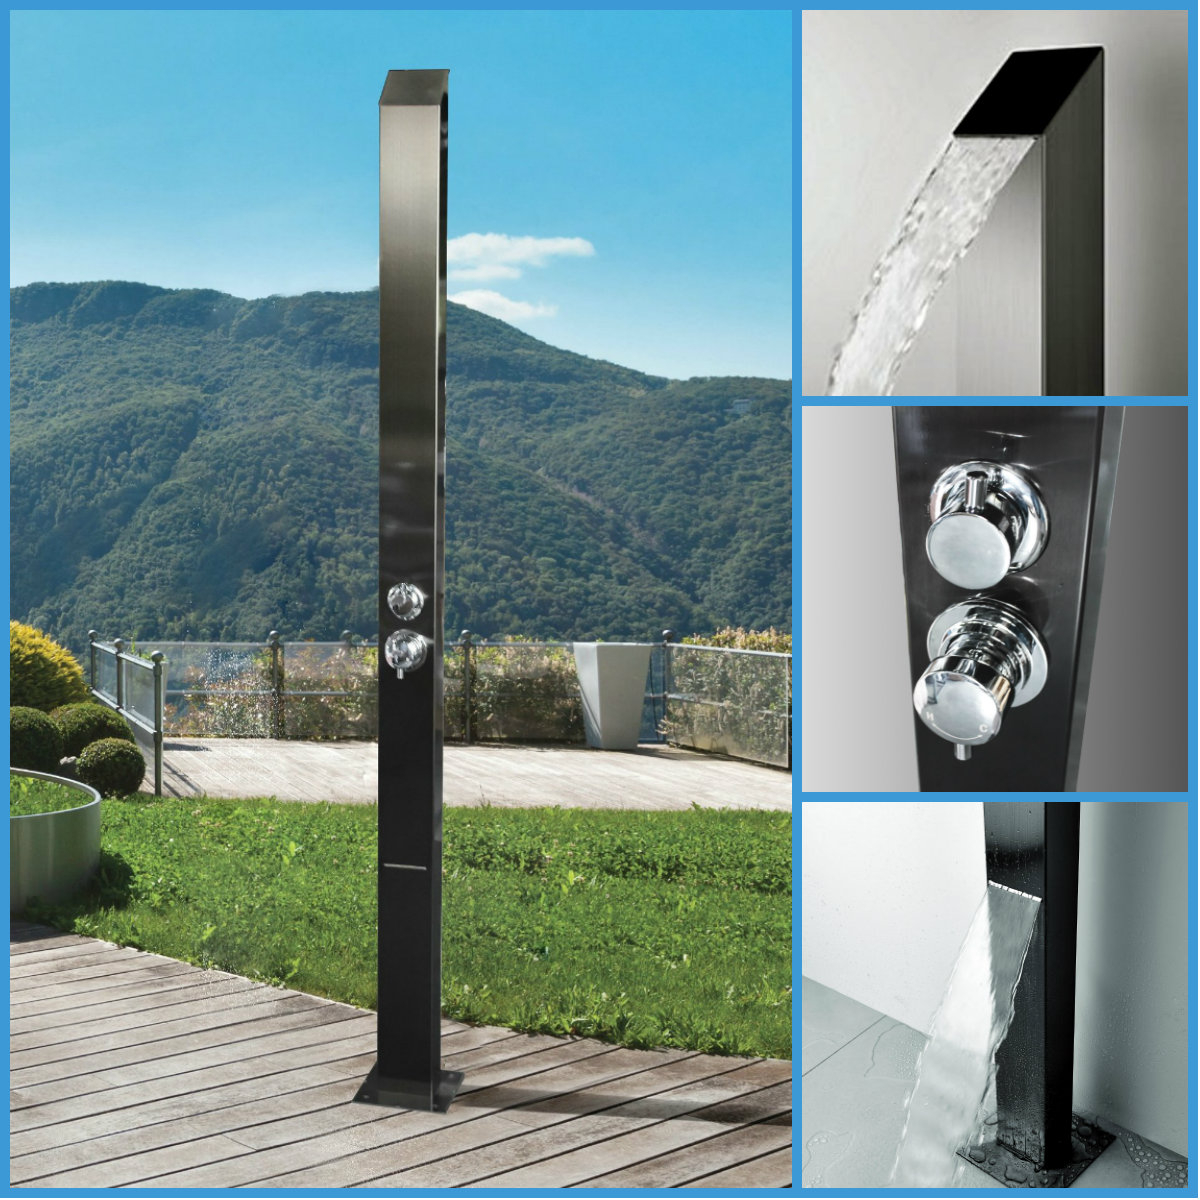 316 Marine Grade Stainless Steel Massage Outdoor Shower Panel Swimming Pool Backyard Bathroom Hot /& Cold Rainfall Hand Held Wall Mounted or Free Standing Outside Shower MILAN MK II